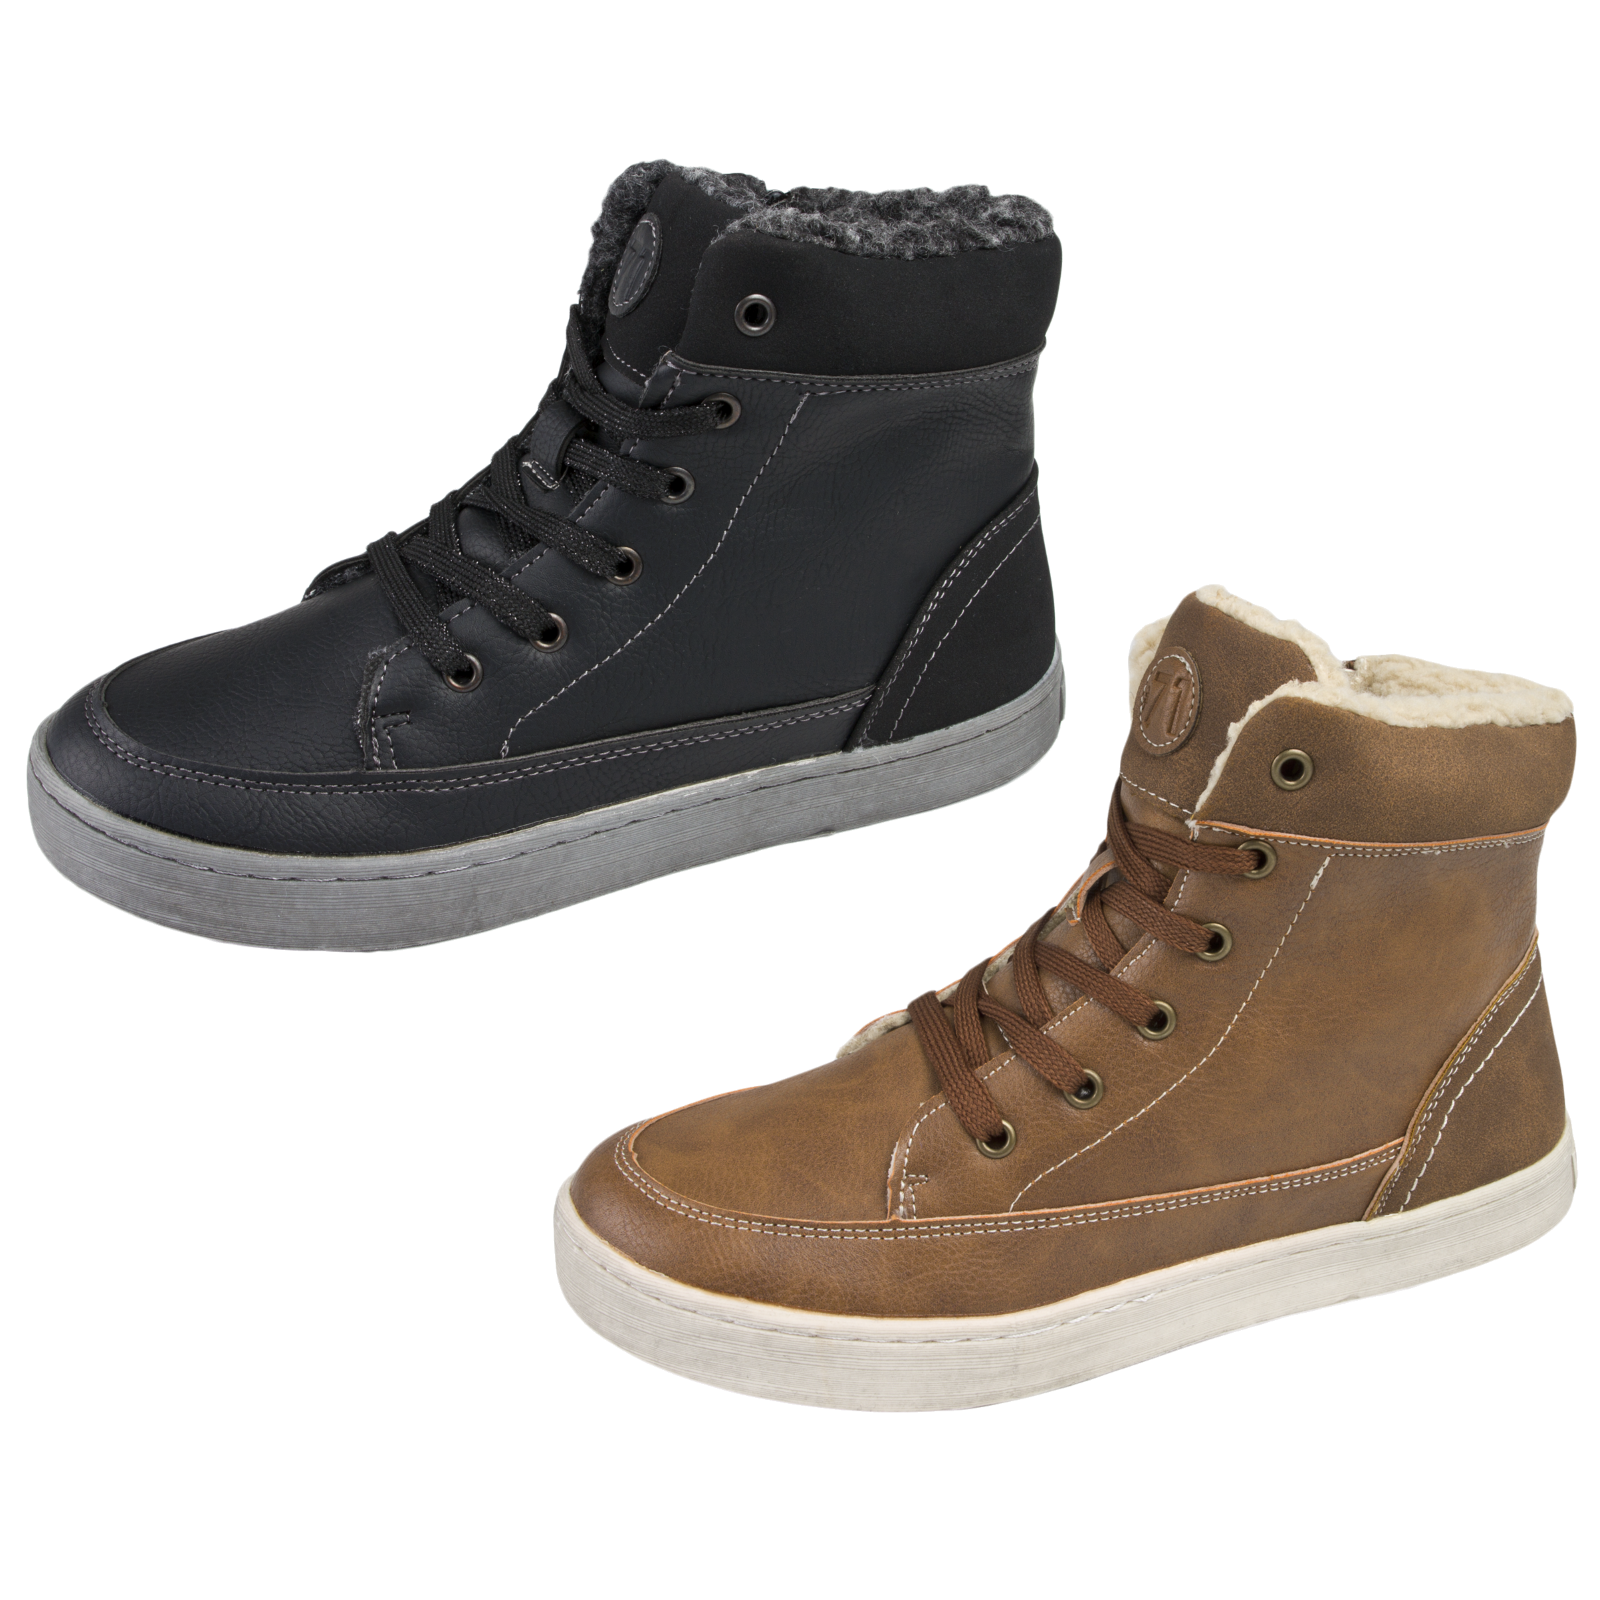 fleece lined hi tops ankle boots trainers womens boys